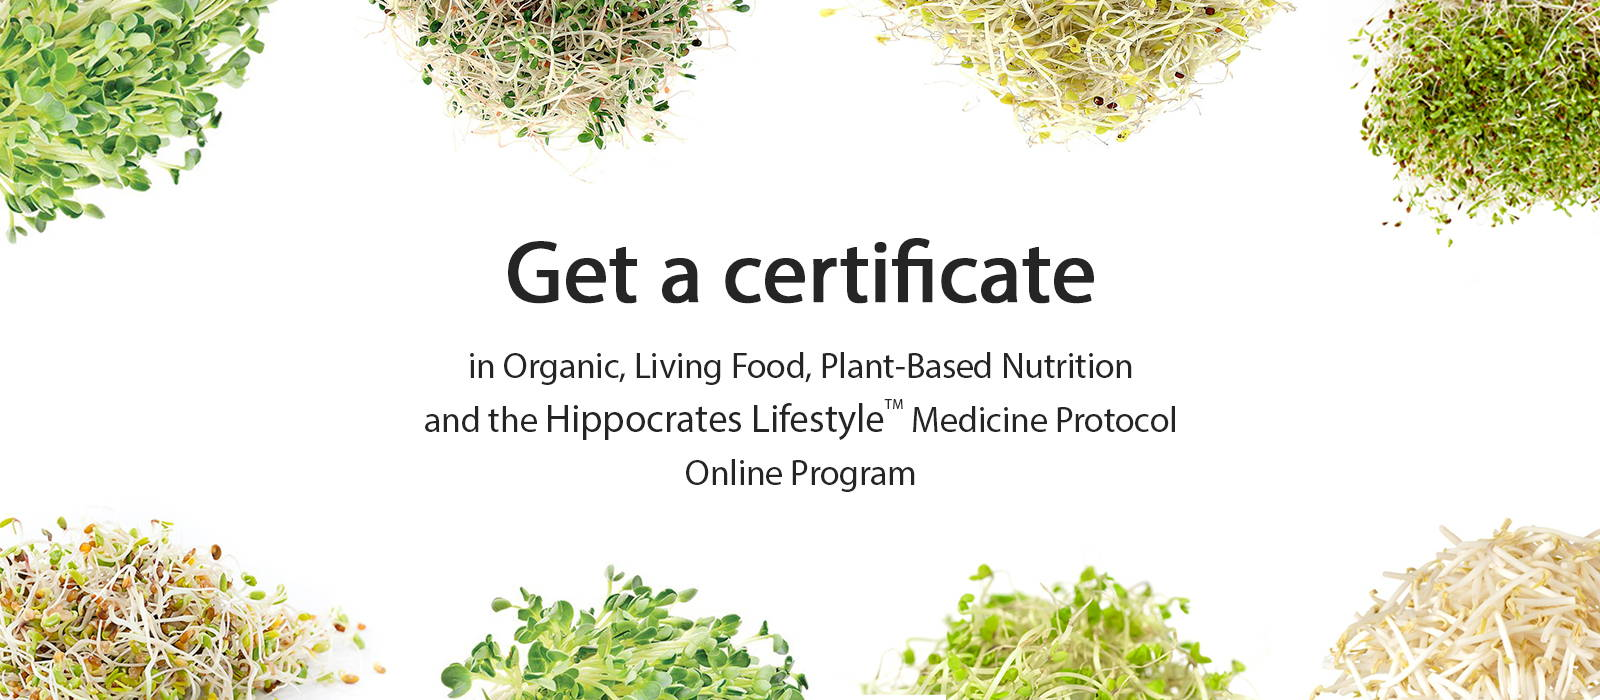 Hippocrates Lifestyle Program